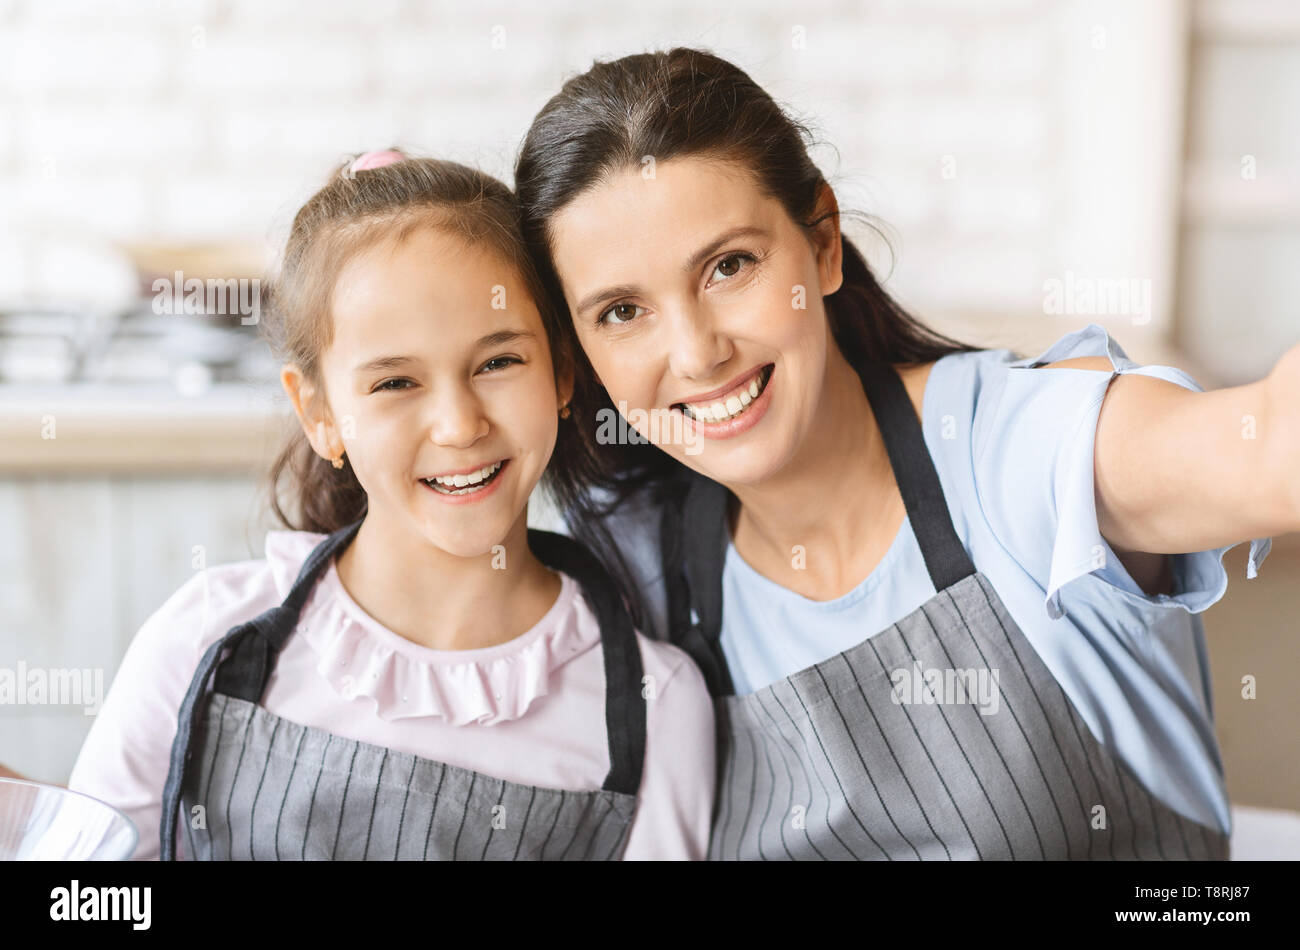 Cute Little Girl And Her Mom In Aprons Making Selfie - Stock Image